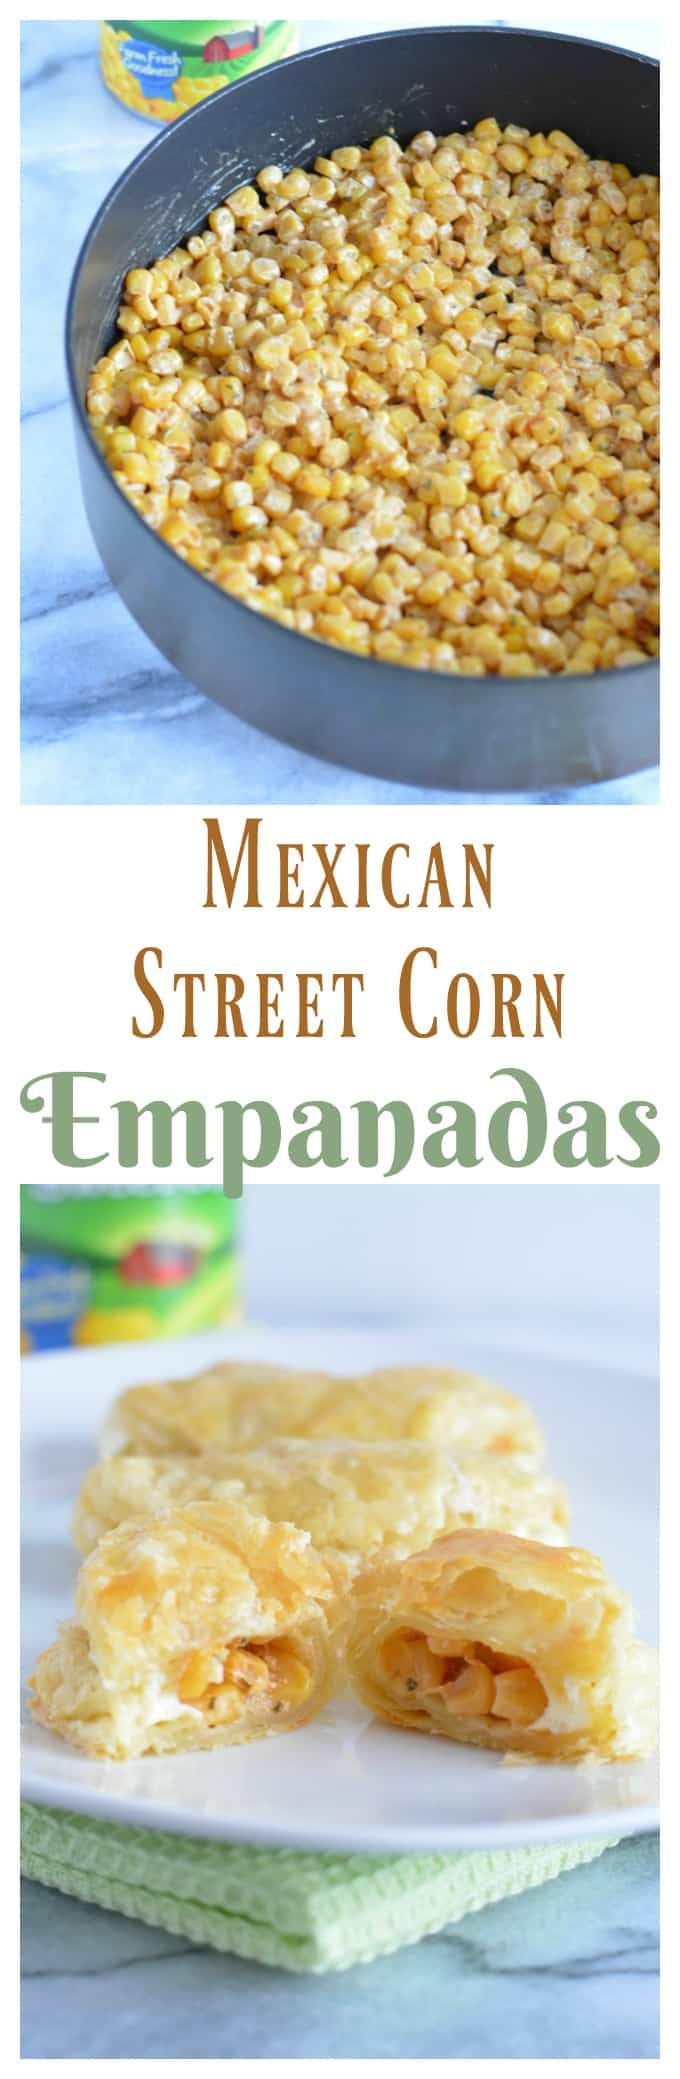 Mexican Street Corn Empanadas are a quick and easy appetizer or snack ready is 30 minutes.